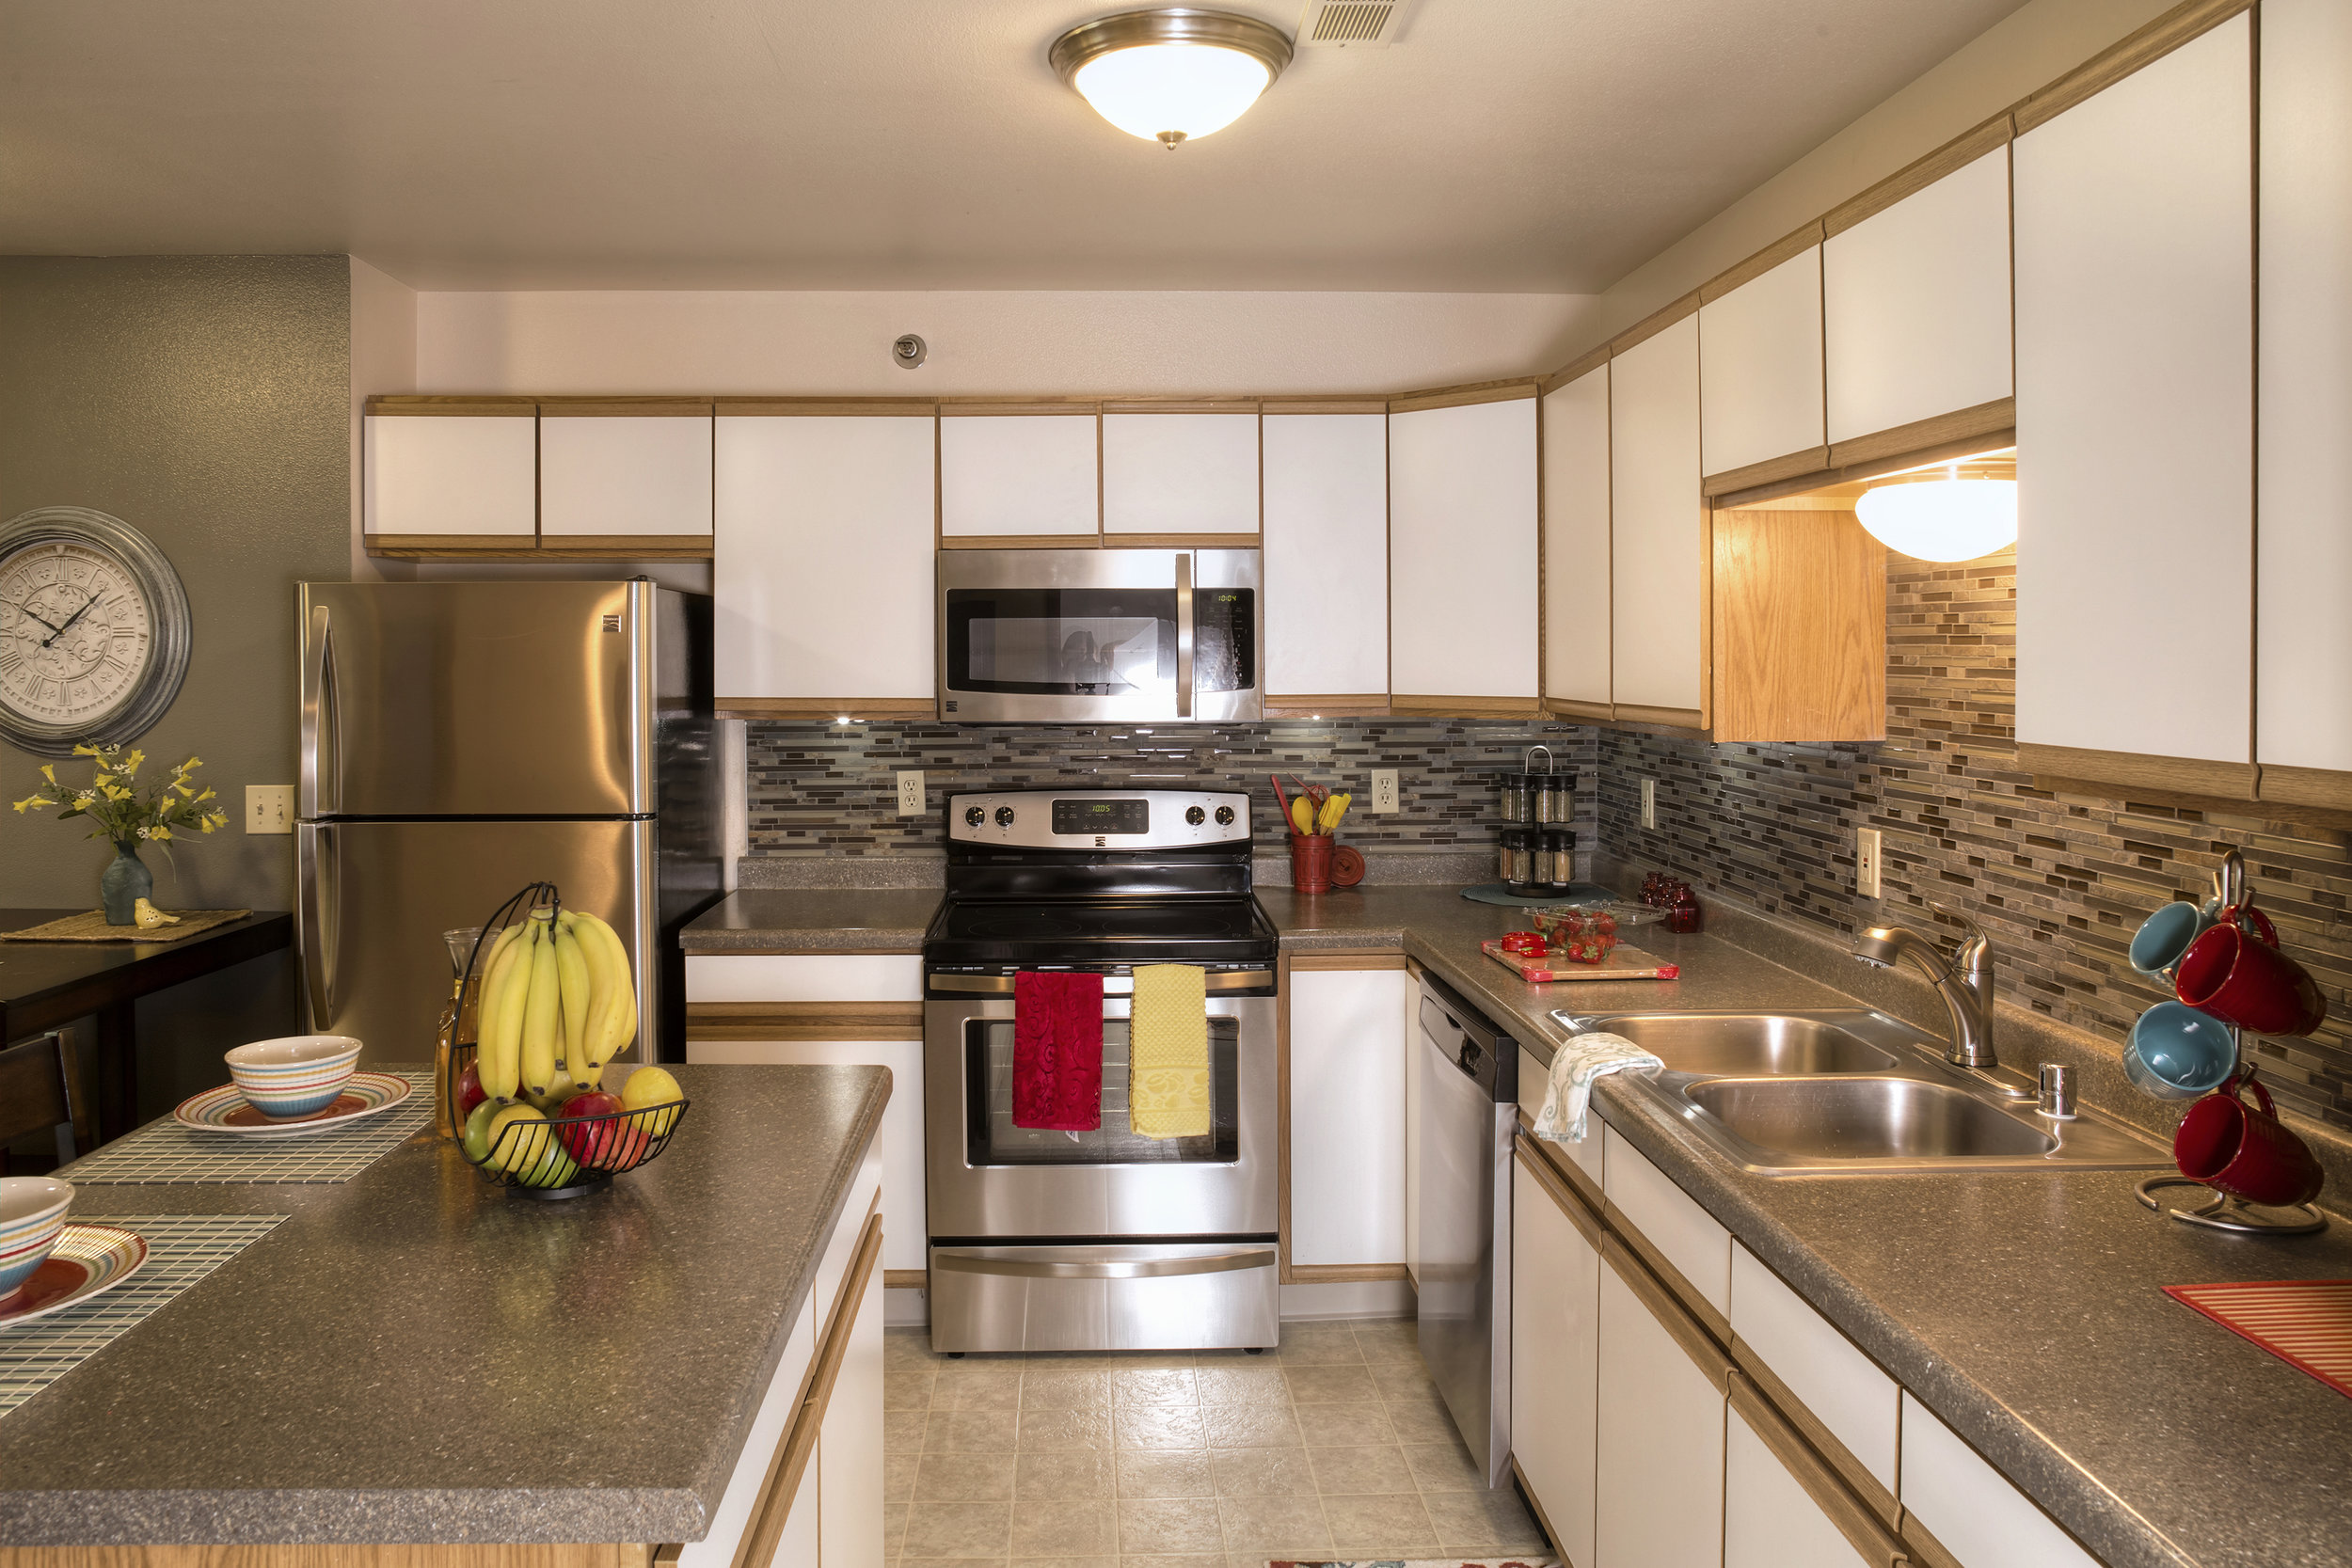 Spacious Kitchens with Center Island and Stainless Steel Appliances